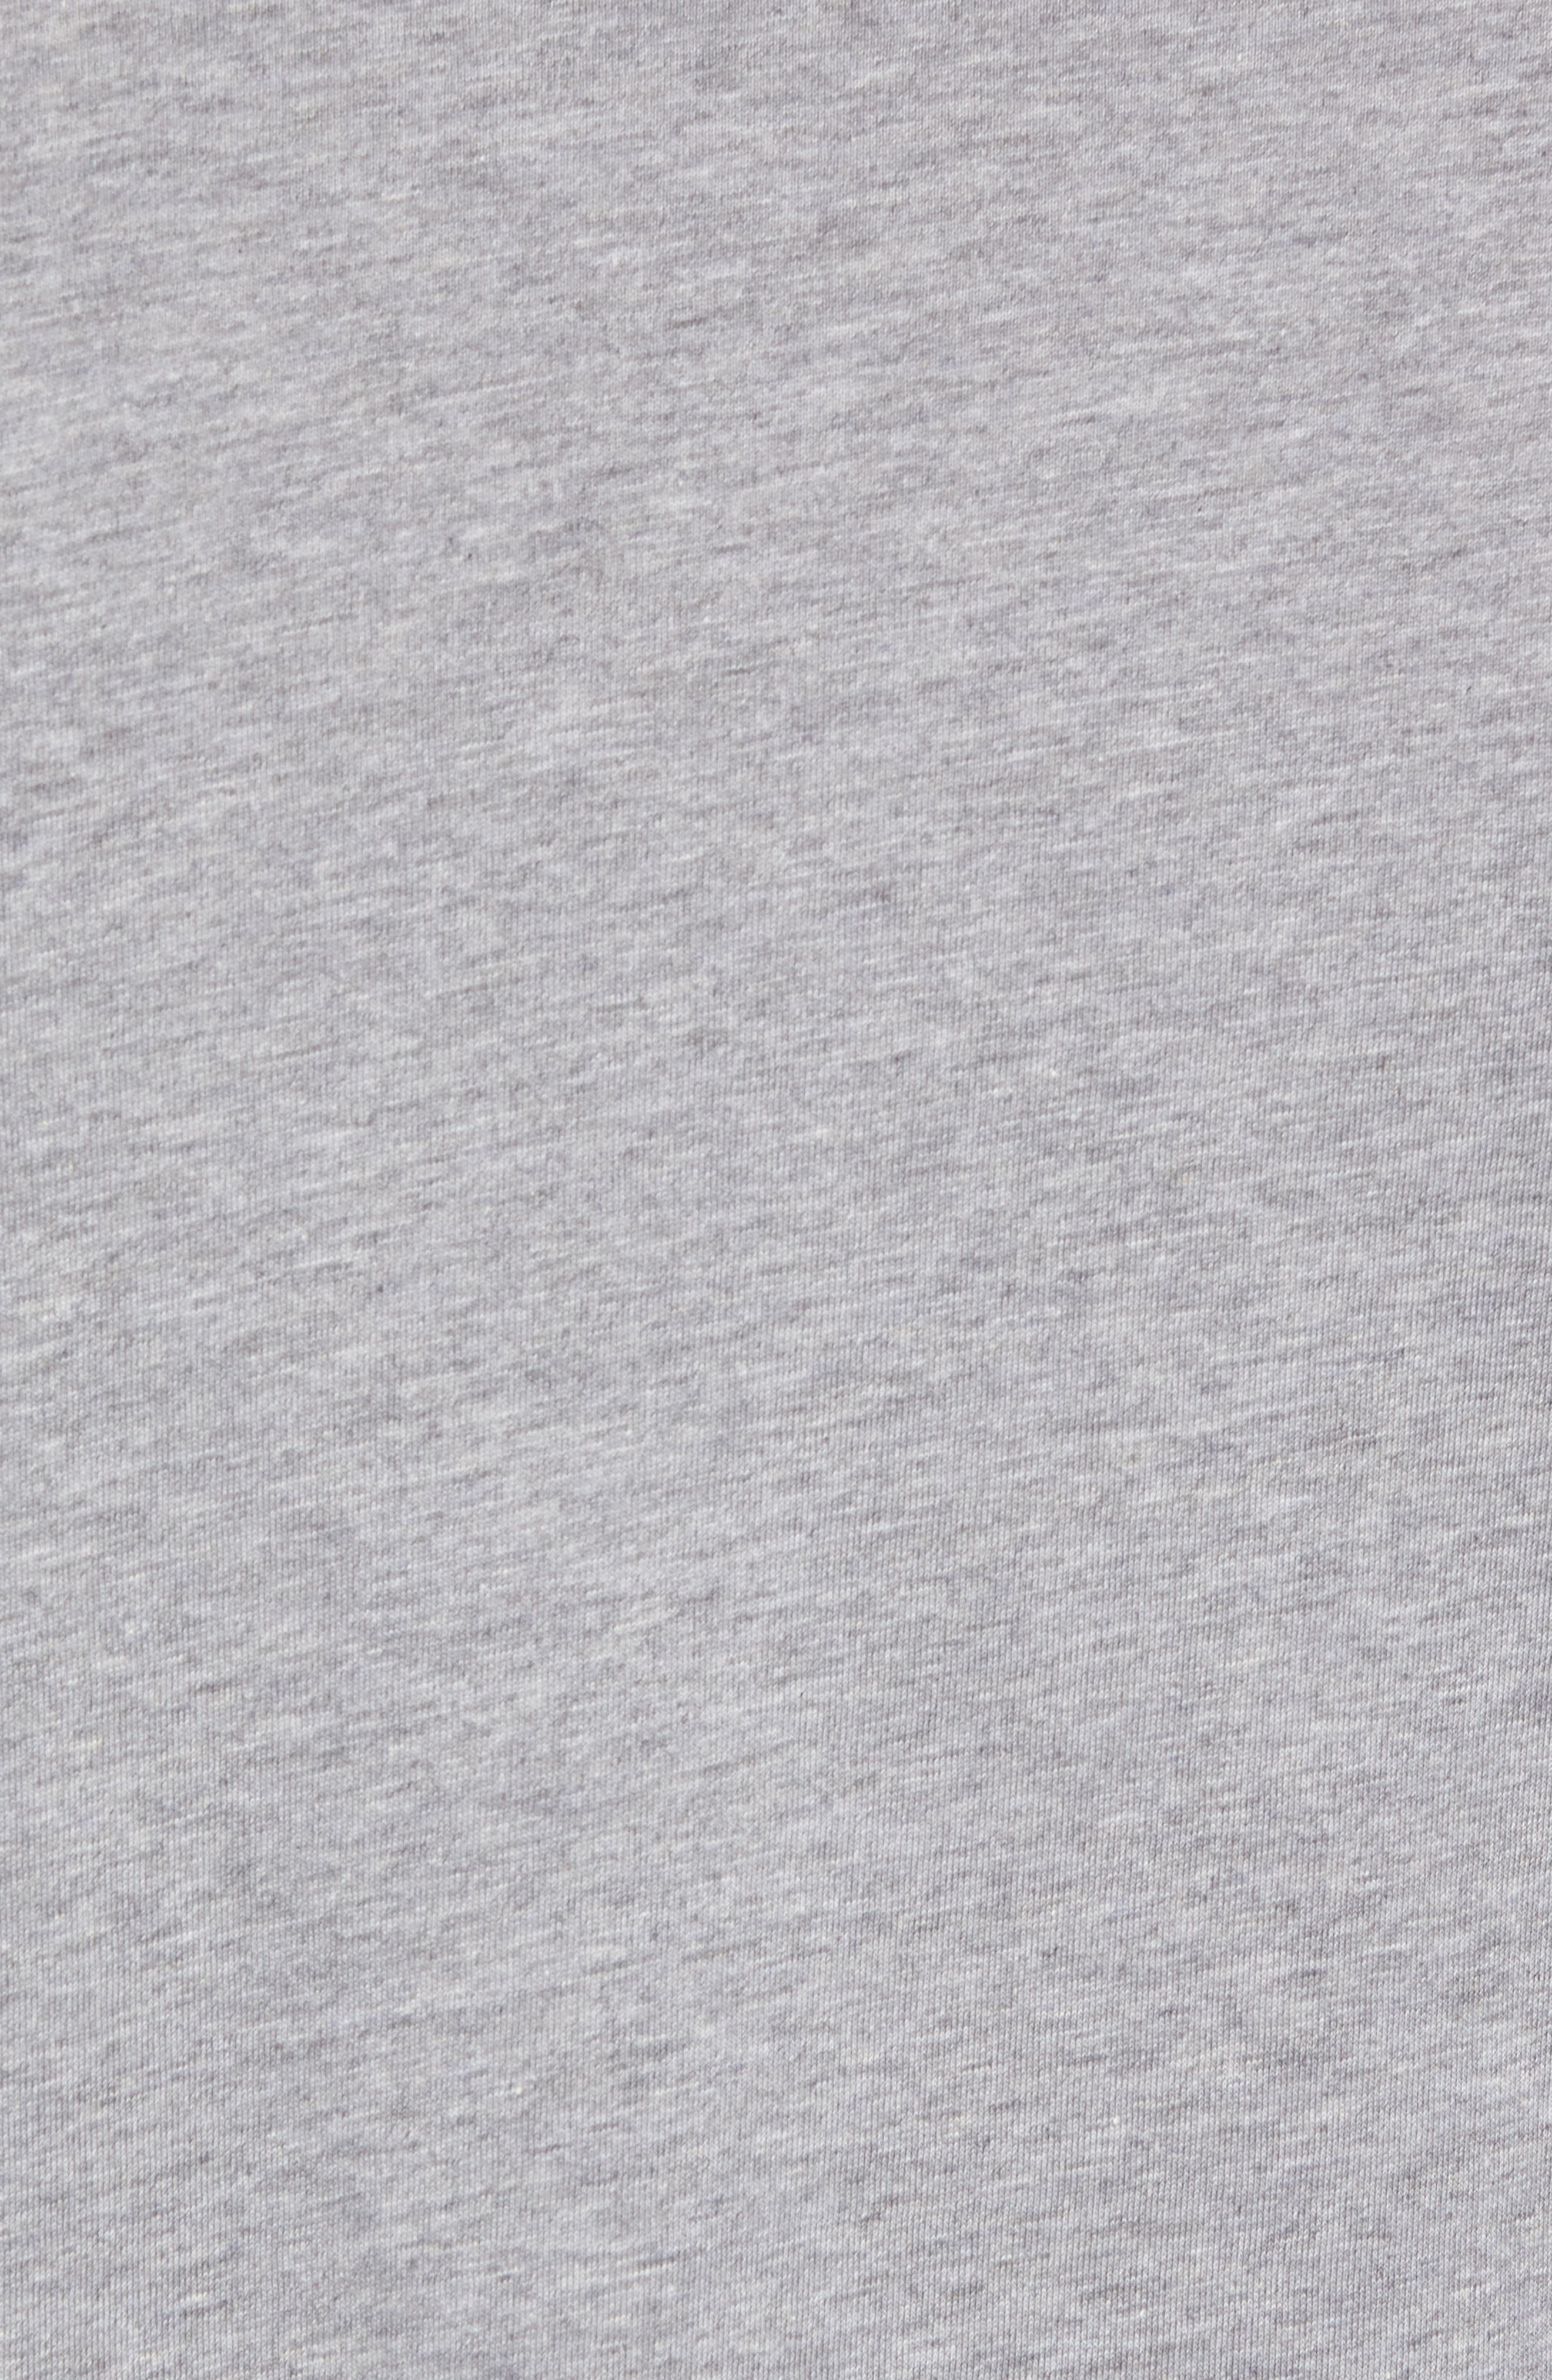 Caddy Day Graphic T-Shirt,                             Alternate thumbnail 6, color,                             Heather Grey